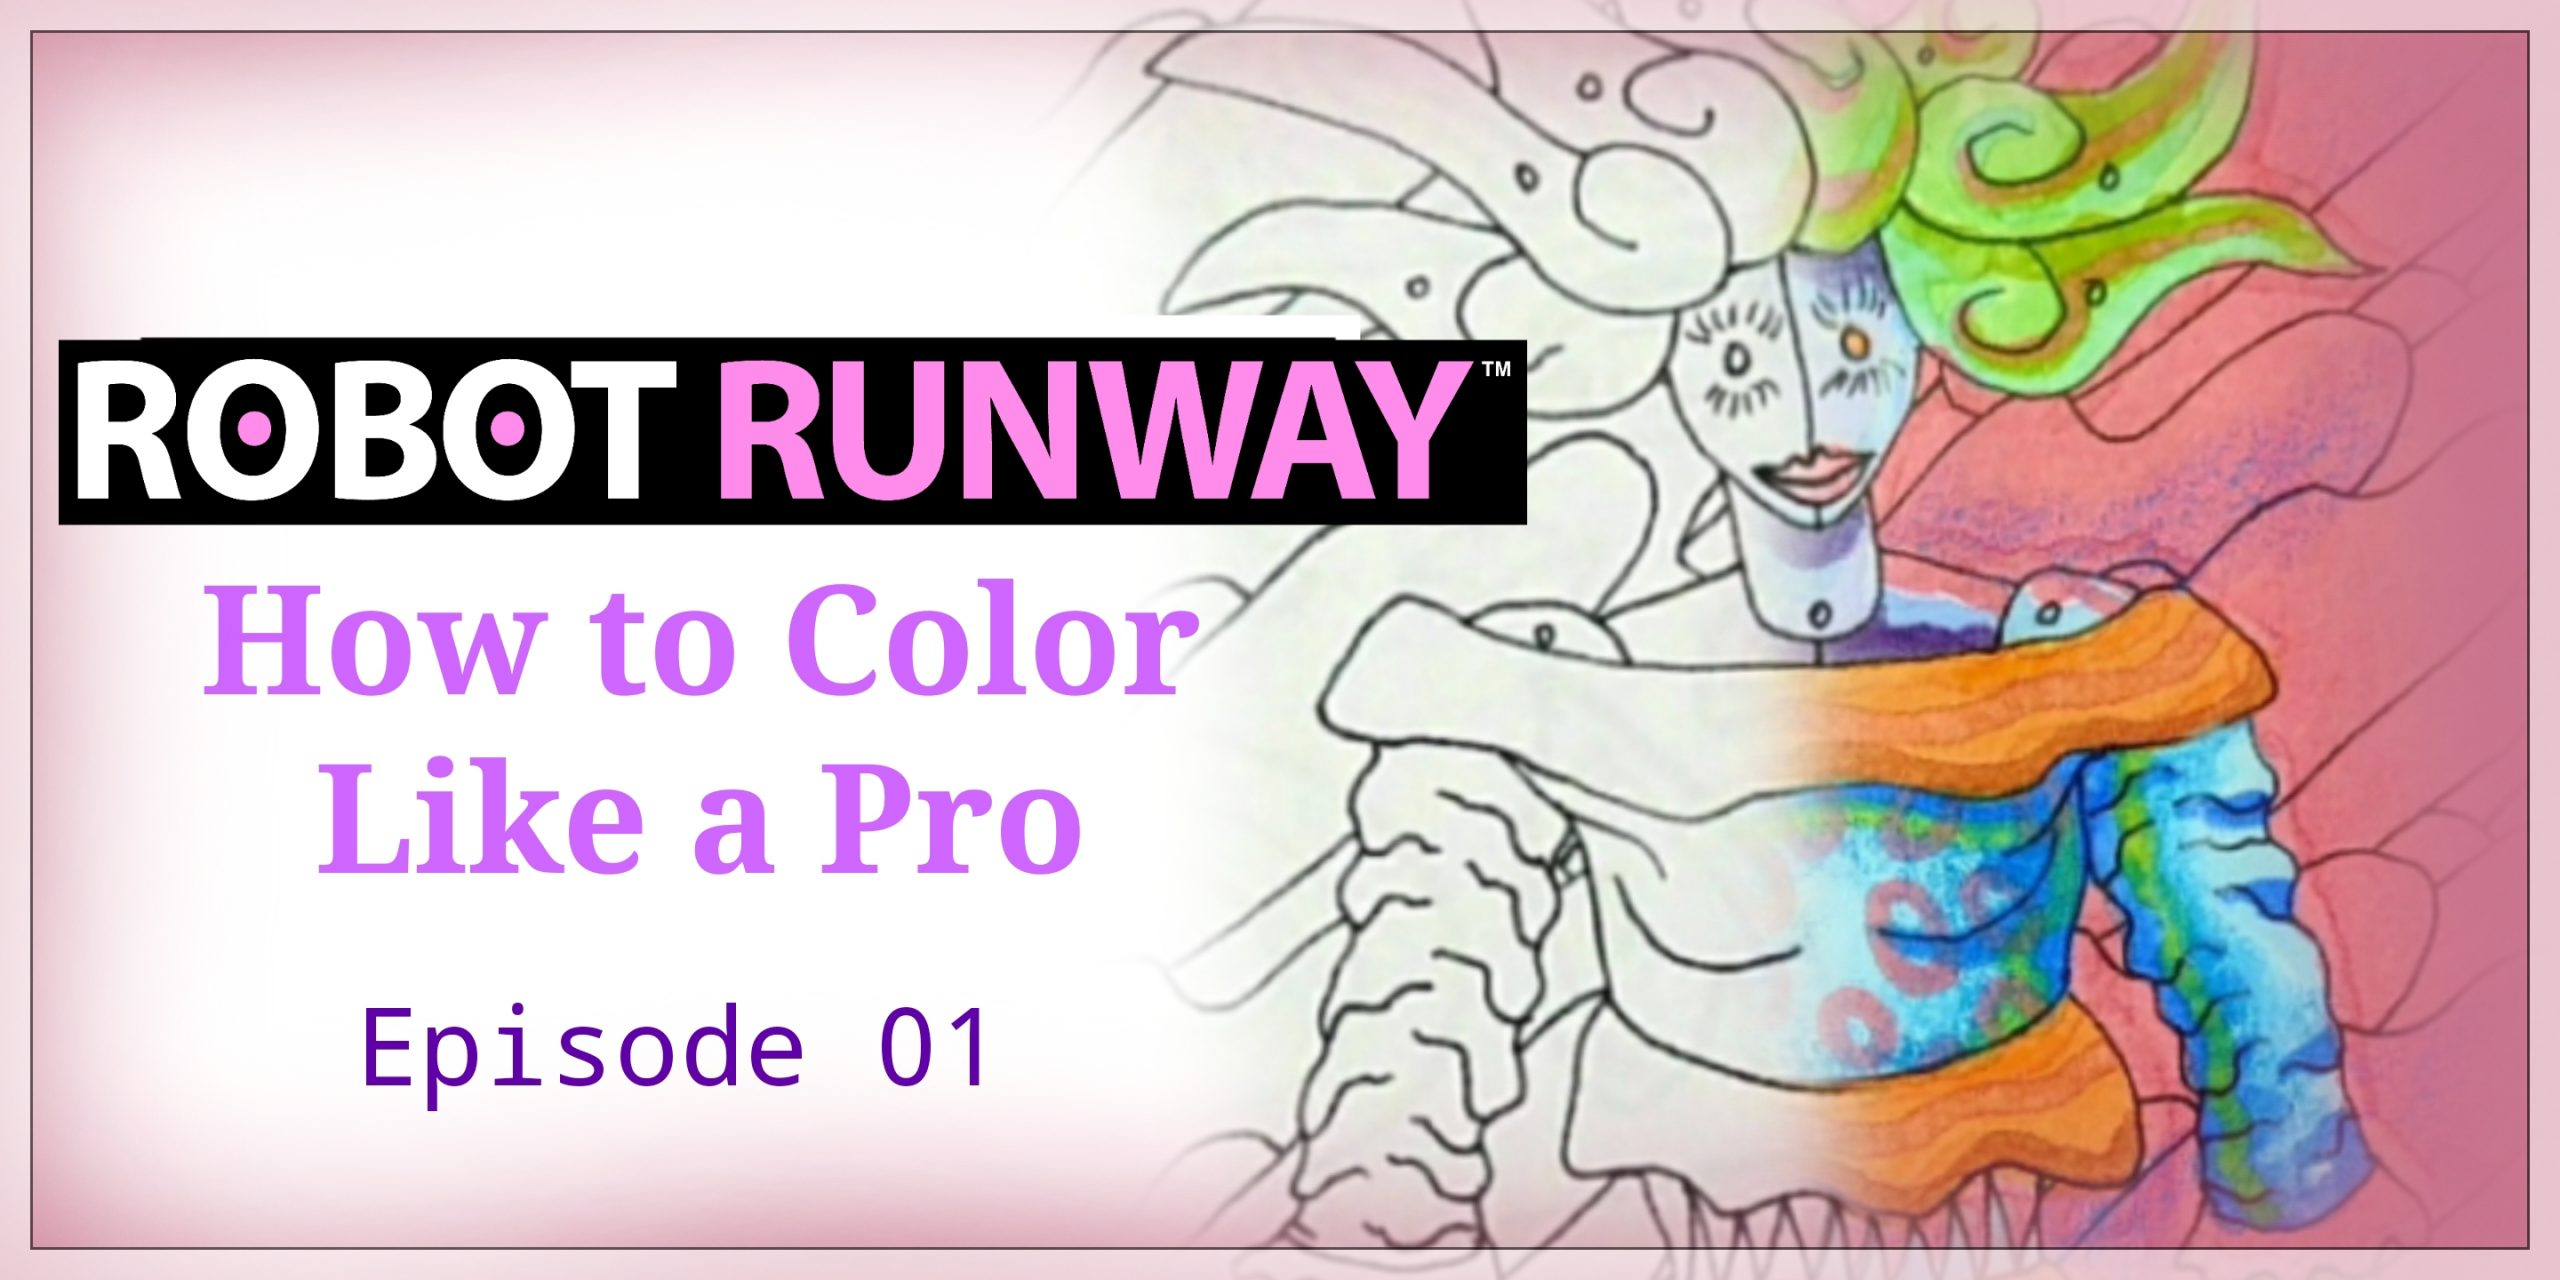 Robot Runway™ How to Color Like a Pro Video Ep.01